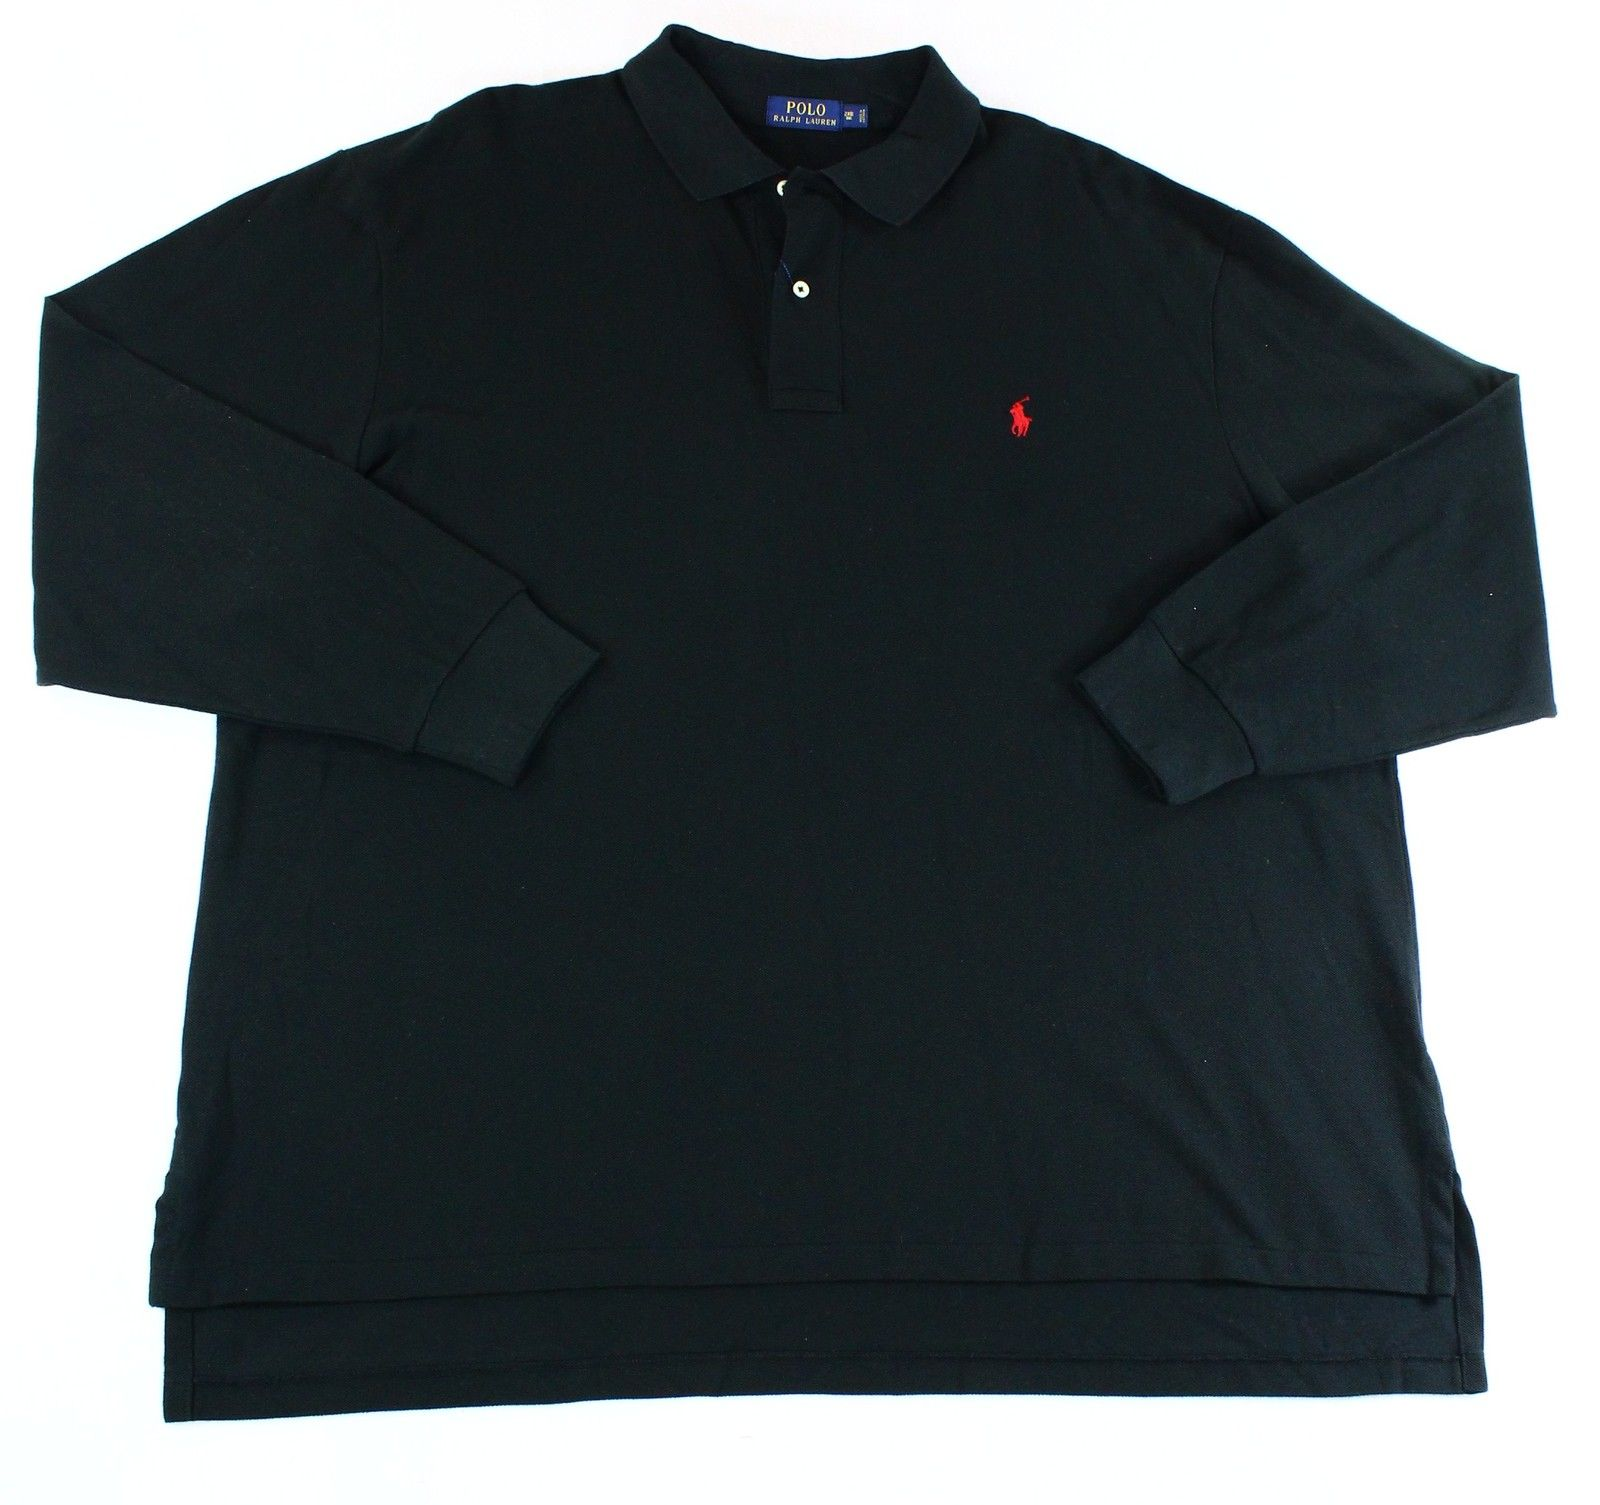 Polo Ralph Lauren New Black Men Size 4xlt Long Sleeve Polo Rugby